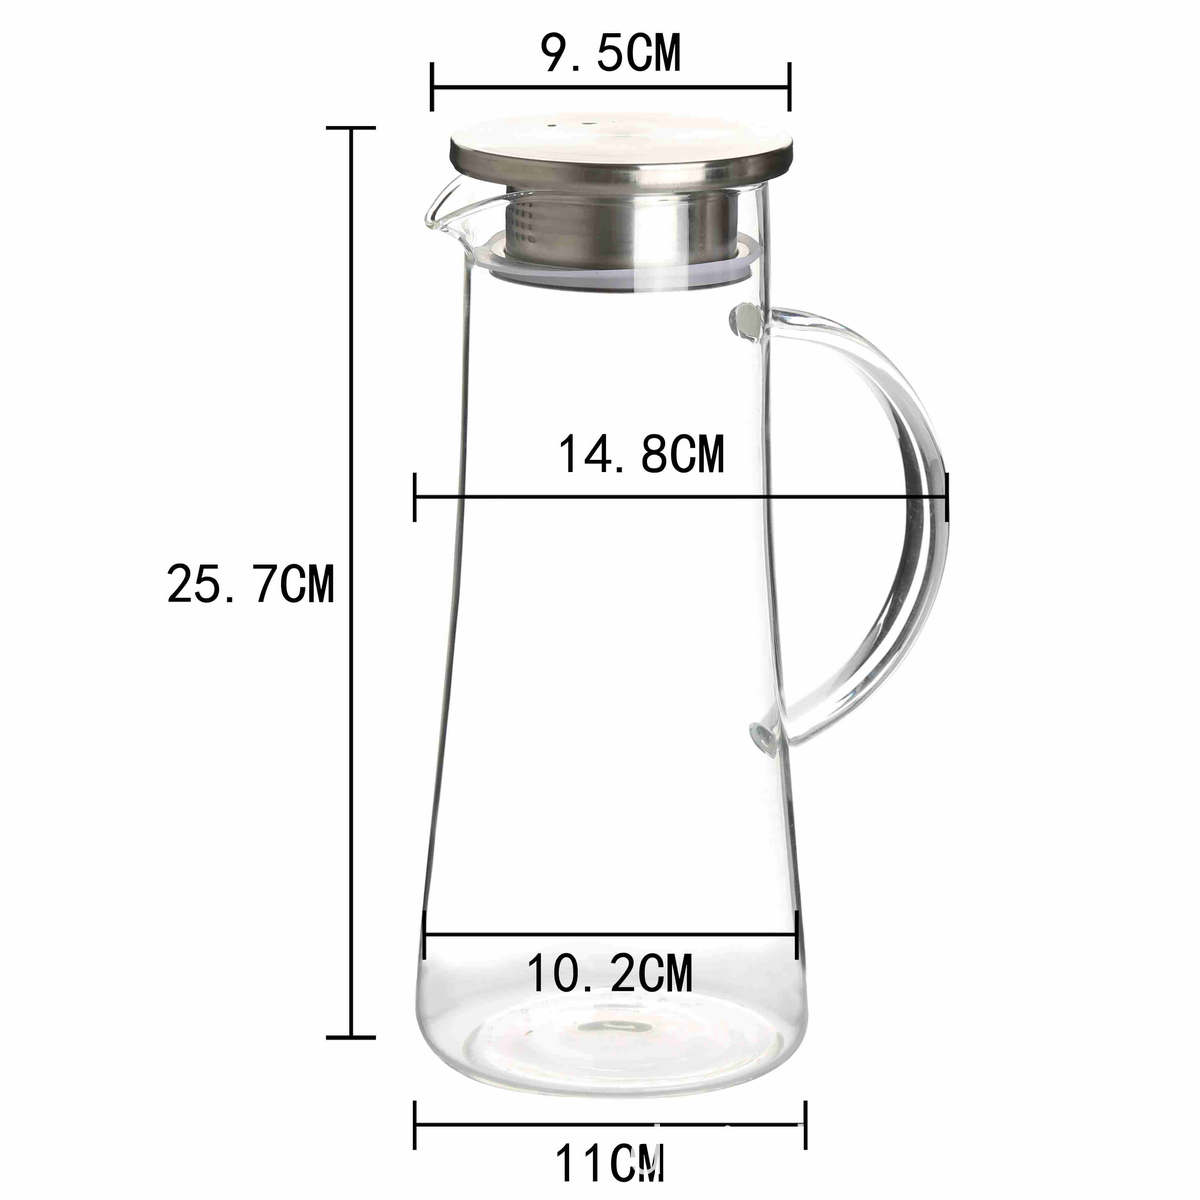 high borosilicate Glass heat cold resistant best quality coffee milk tea carafe pot maker pitcher with airtight stainless steel lid 00 (12)